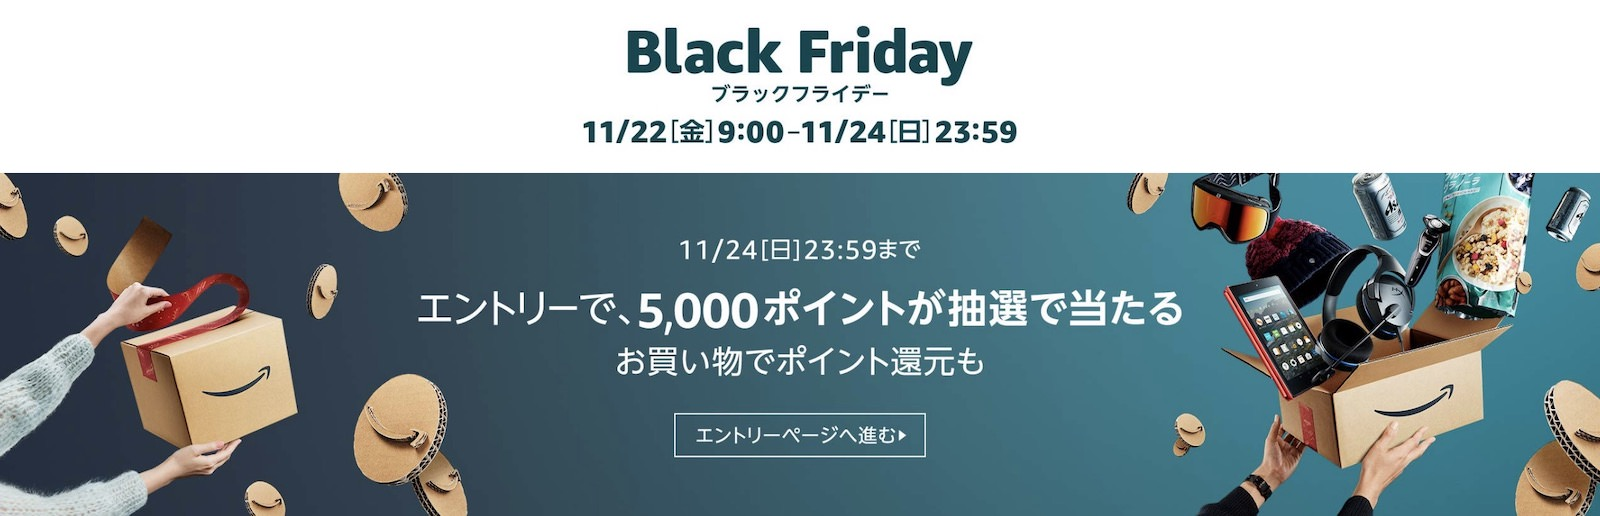 Black Friday in Japan